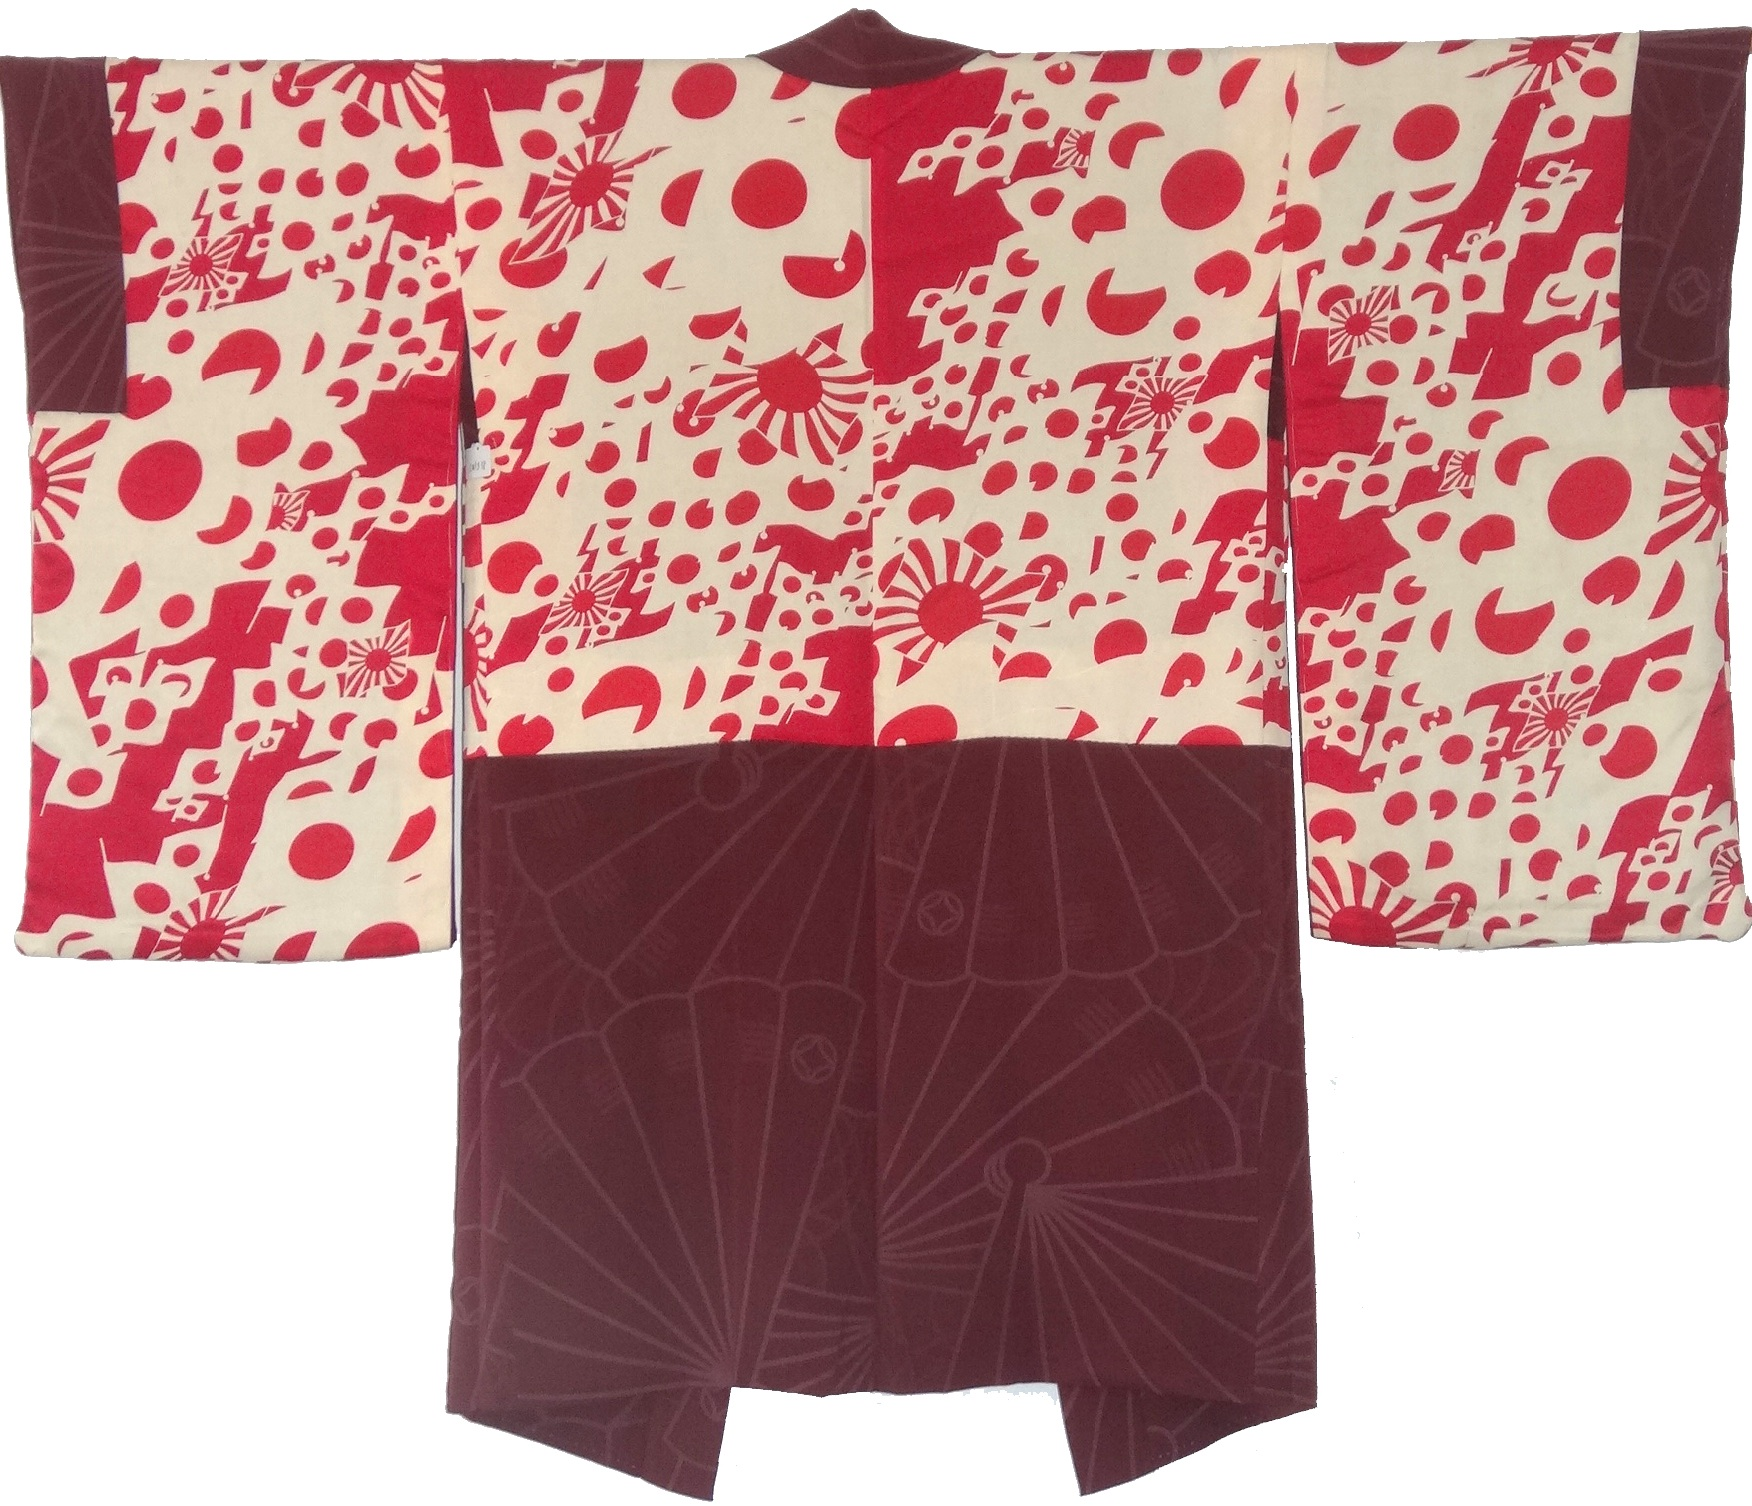 Flag Parade,  Woman's Haori, c. 1940, silk, 37h x 48.75w in.